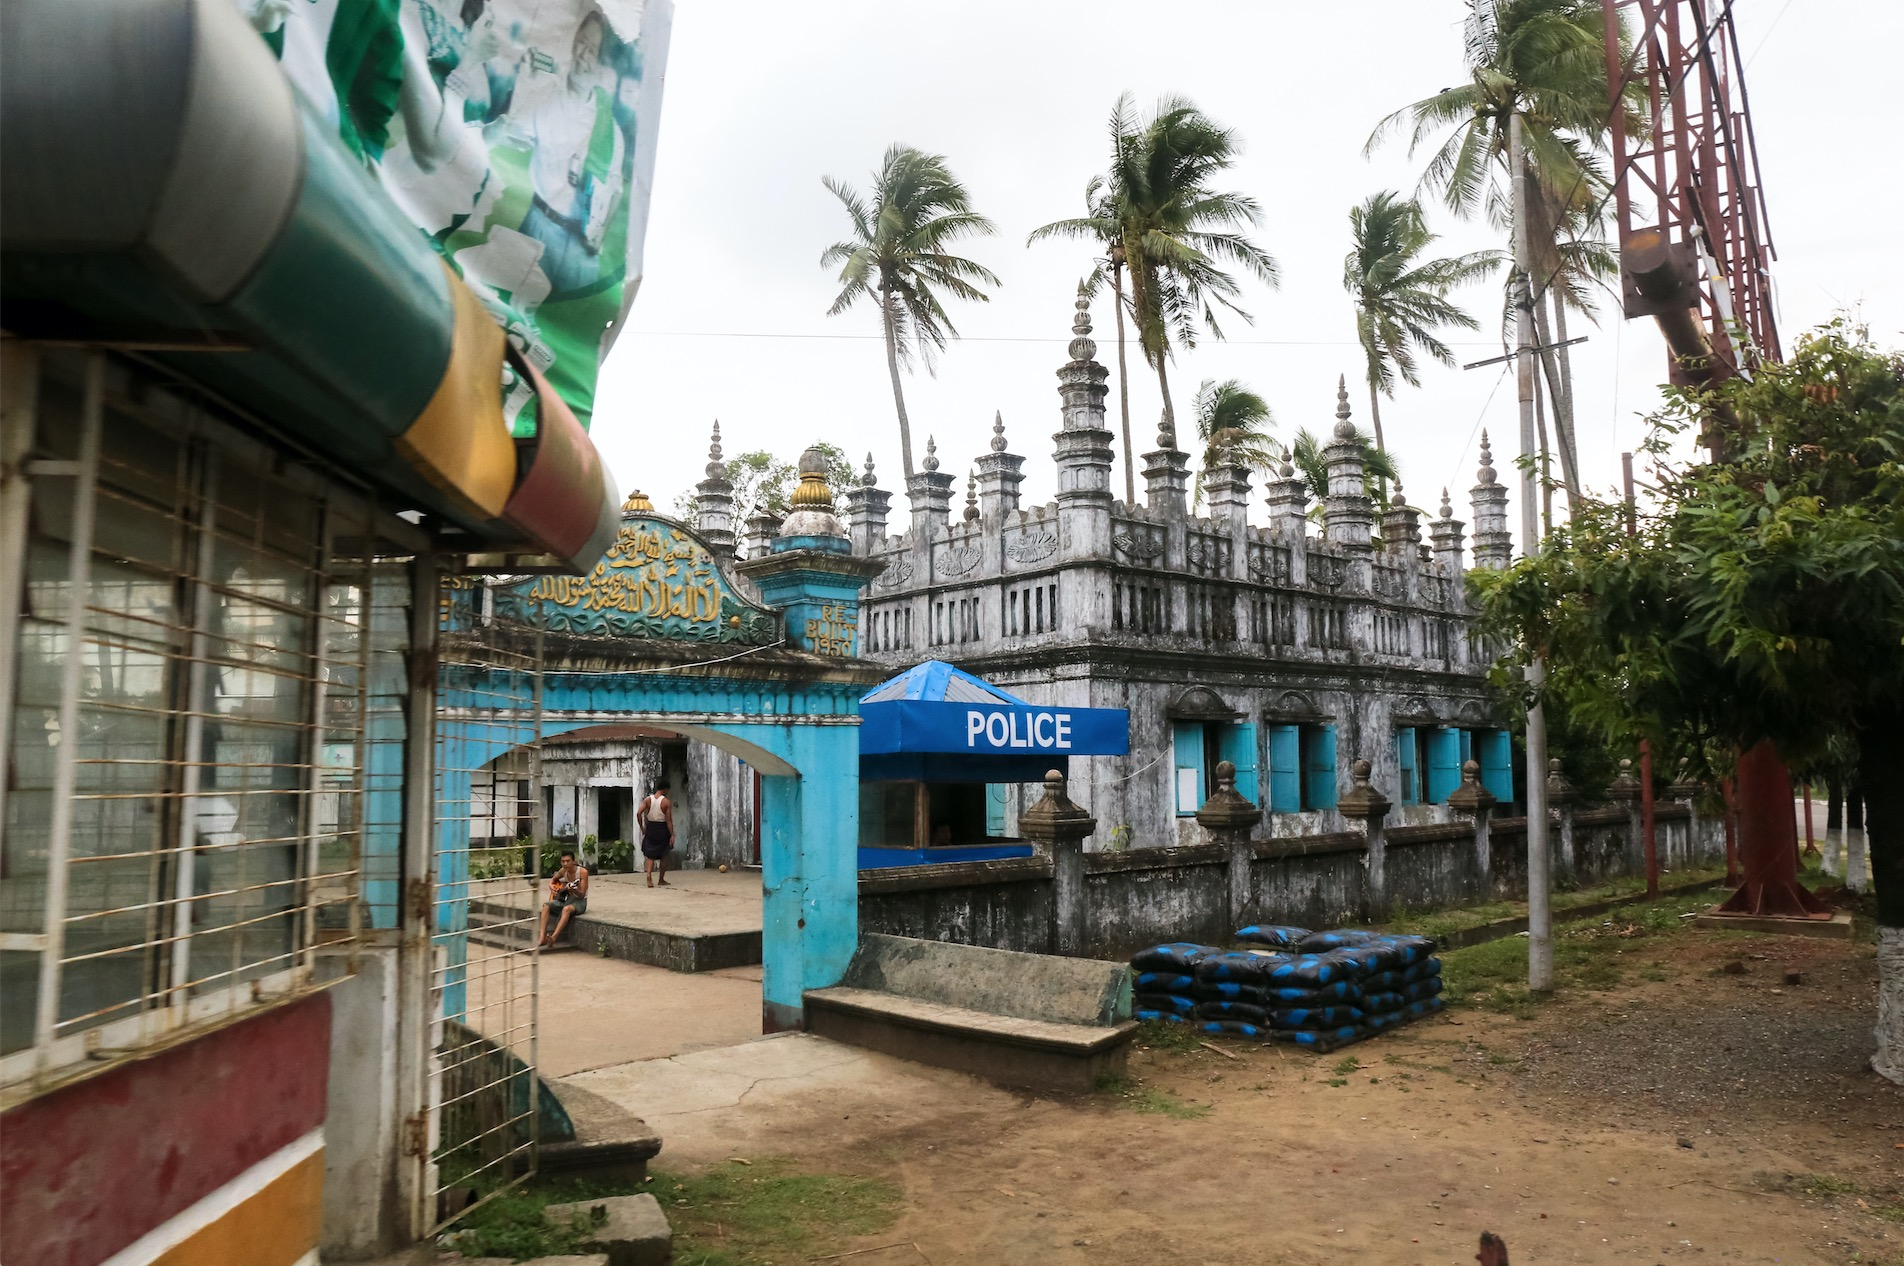 A mosque sits vacant and guarded by police in Sittwe, Rakhine State. The mosques have been empty since the 2012 violence. June 2017